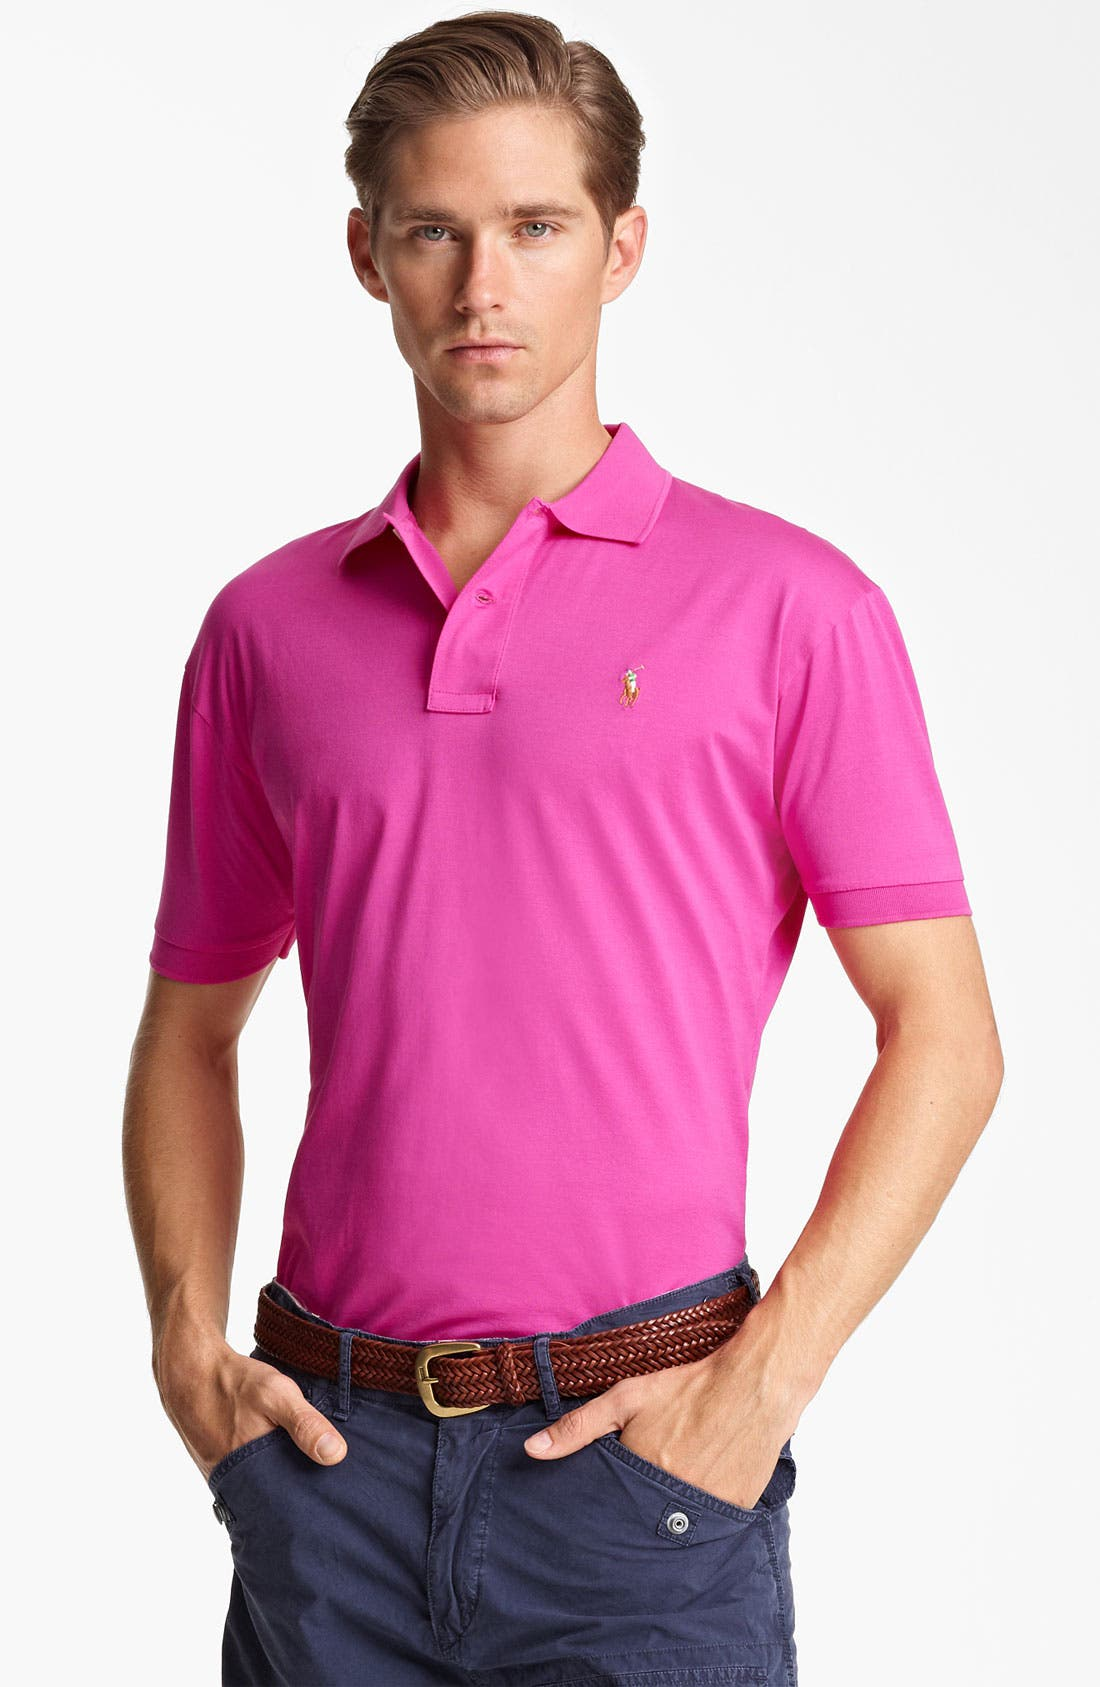 Alternate Image 1 Selected - Polo Ralph Lauren Classic Fit Polo